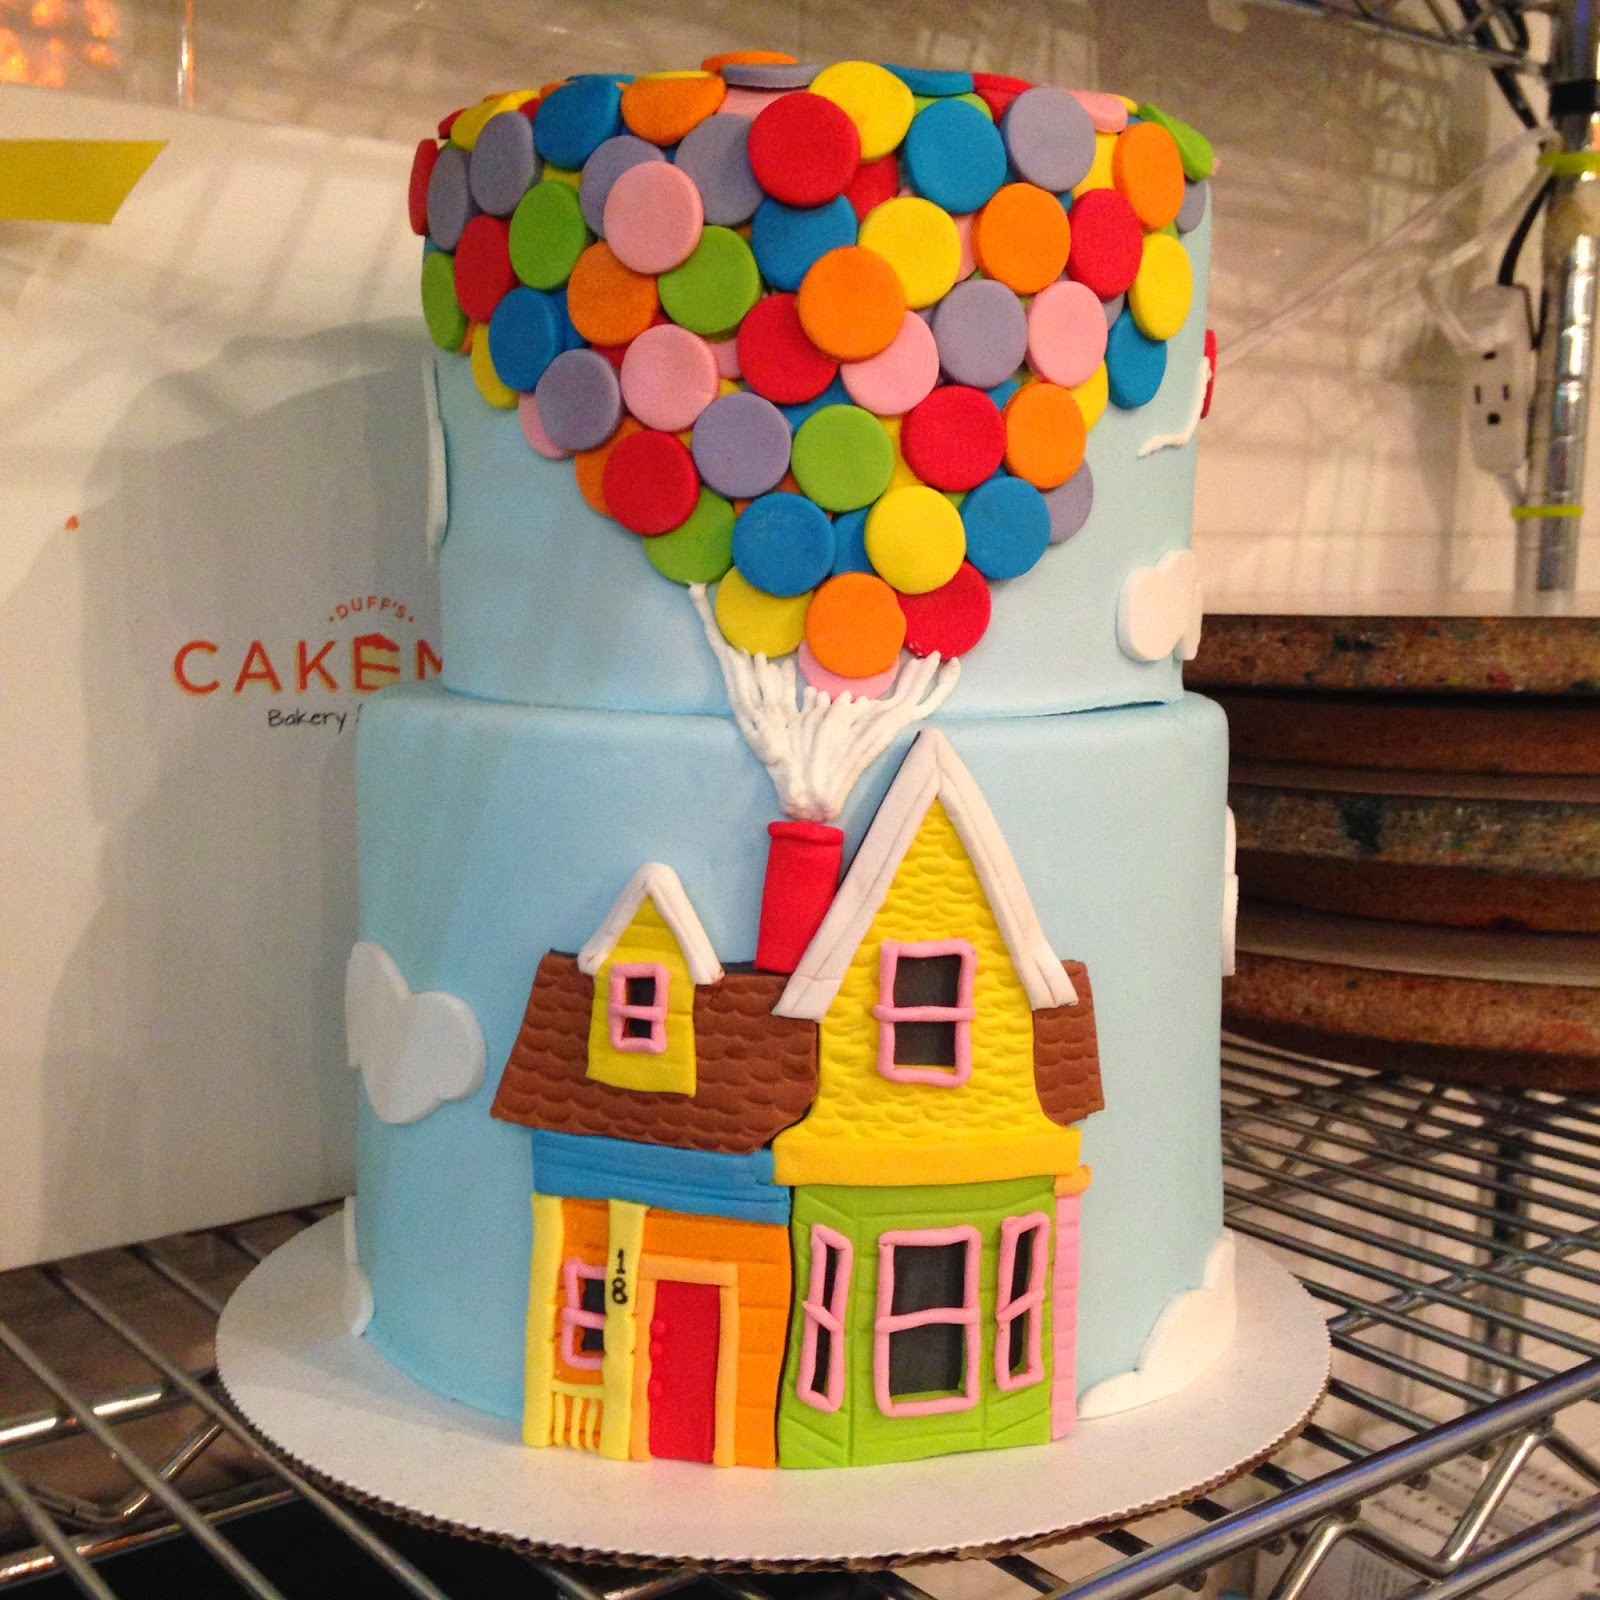 Up balloons house cake - Duff Cake Mix Children's Hospital LA Stephen Glickman Birthday - Hello, Handbag